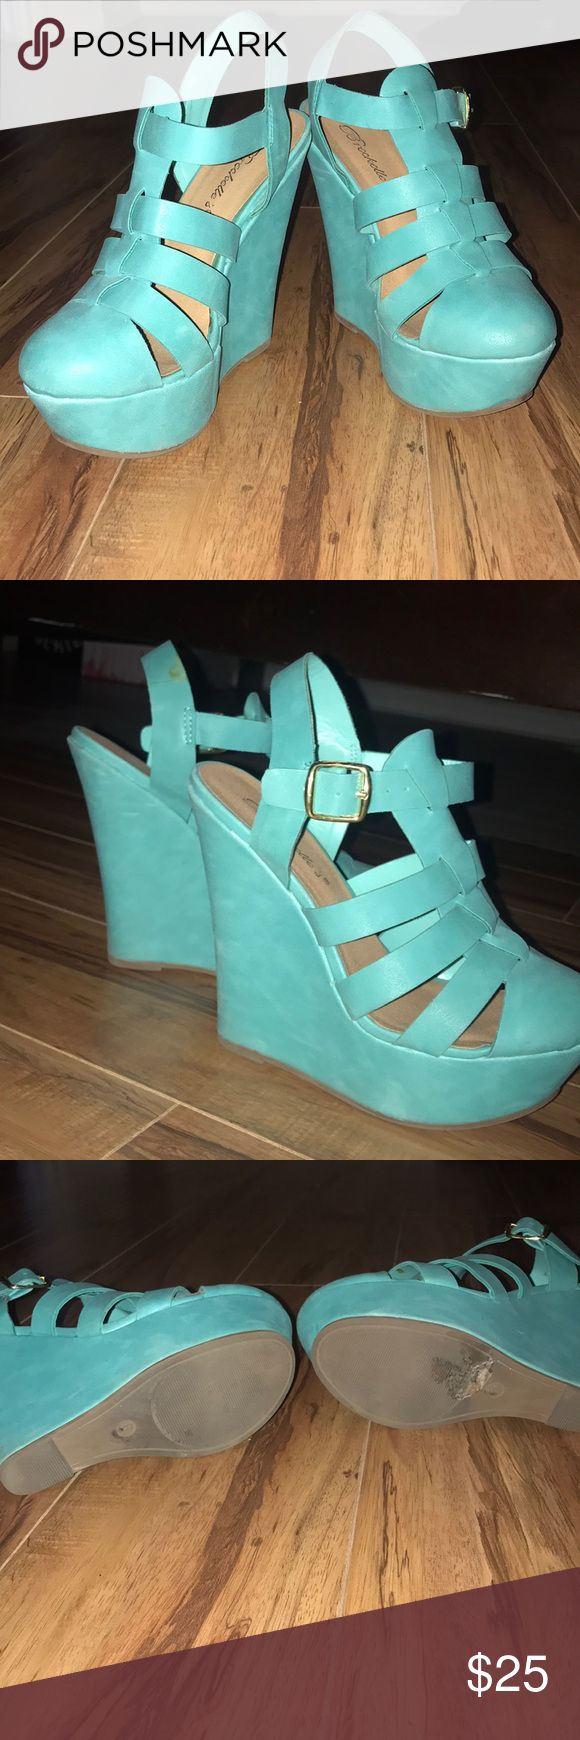 Breckelle's brand turquoise wedges Flirty turquoise wedges Breckelles Shoes Wedges